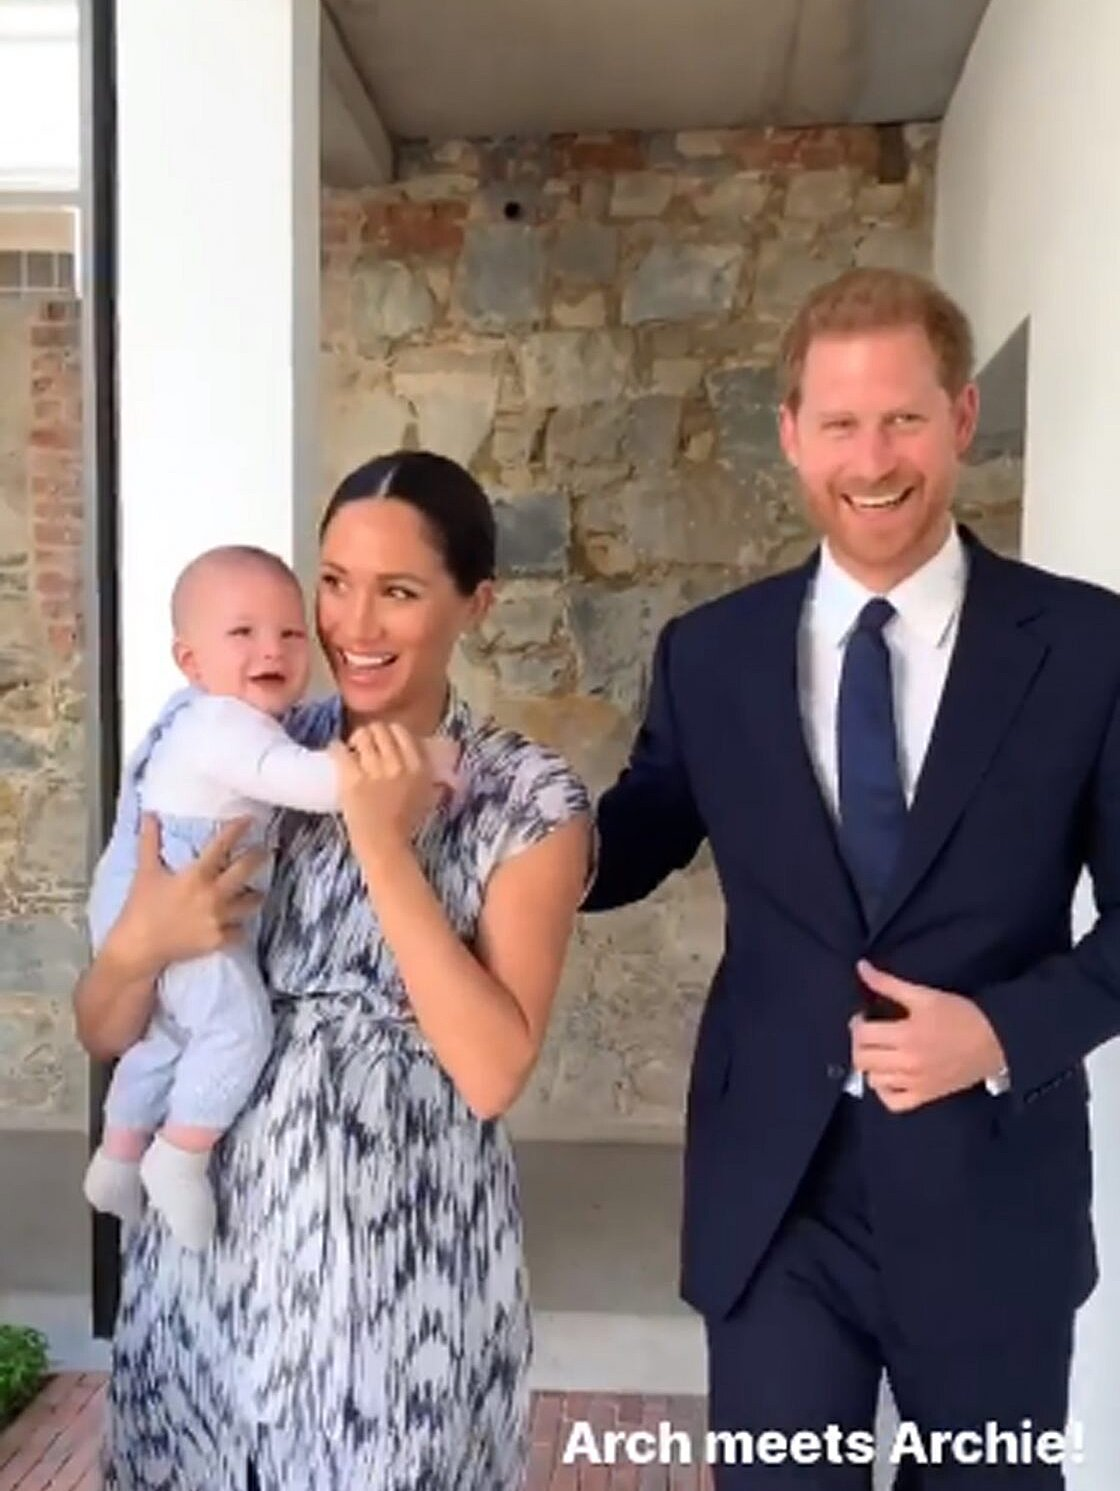 meghan markle and prince harry s son archie photos people com meghan markle and prince harry s son